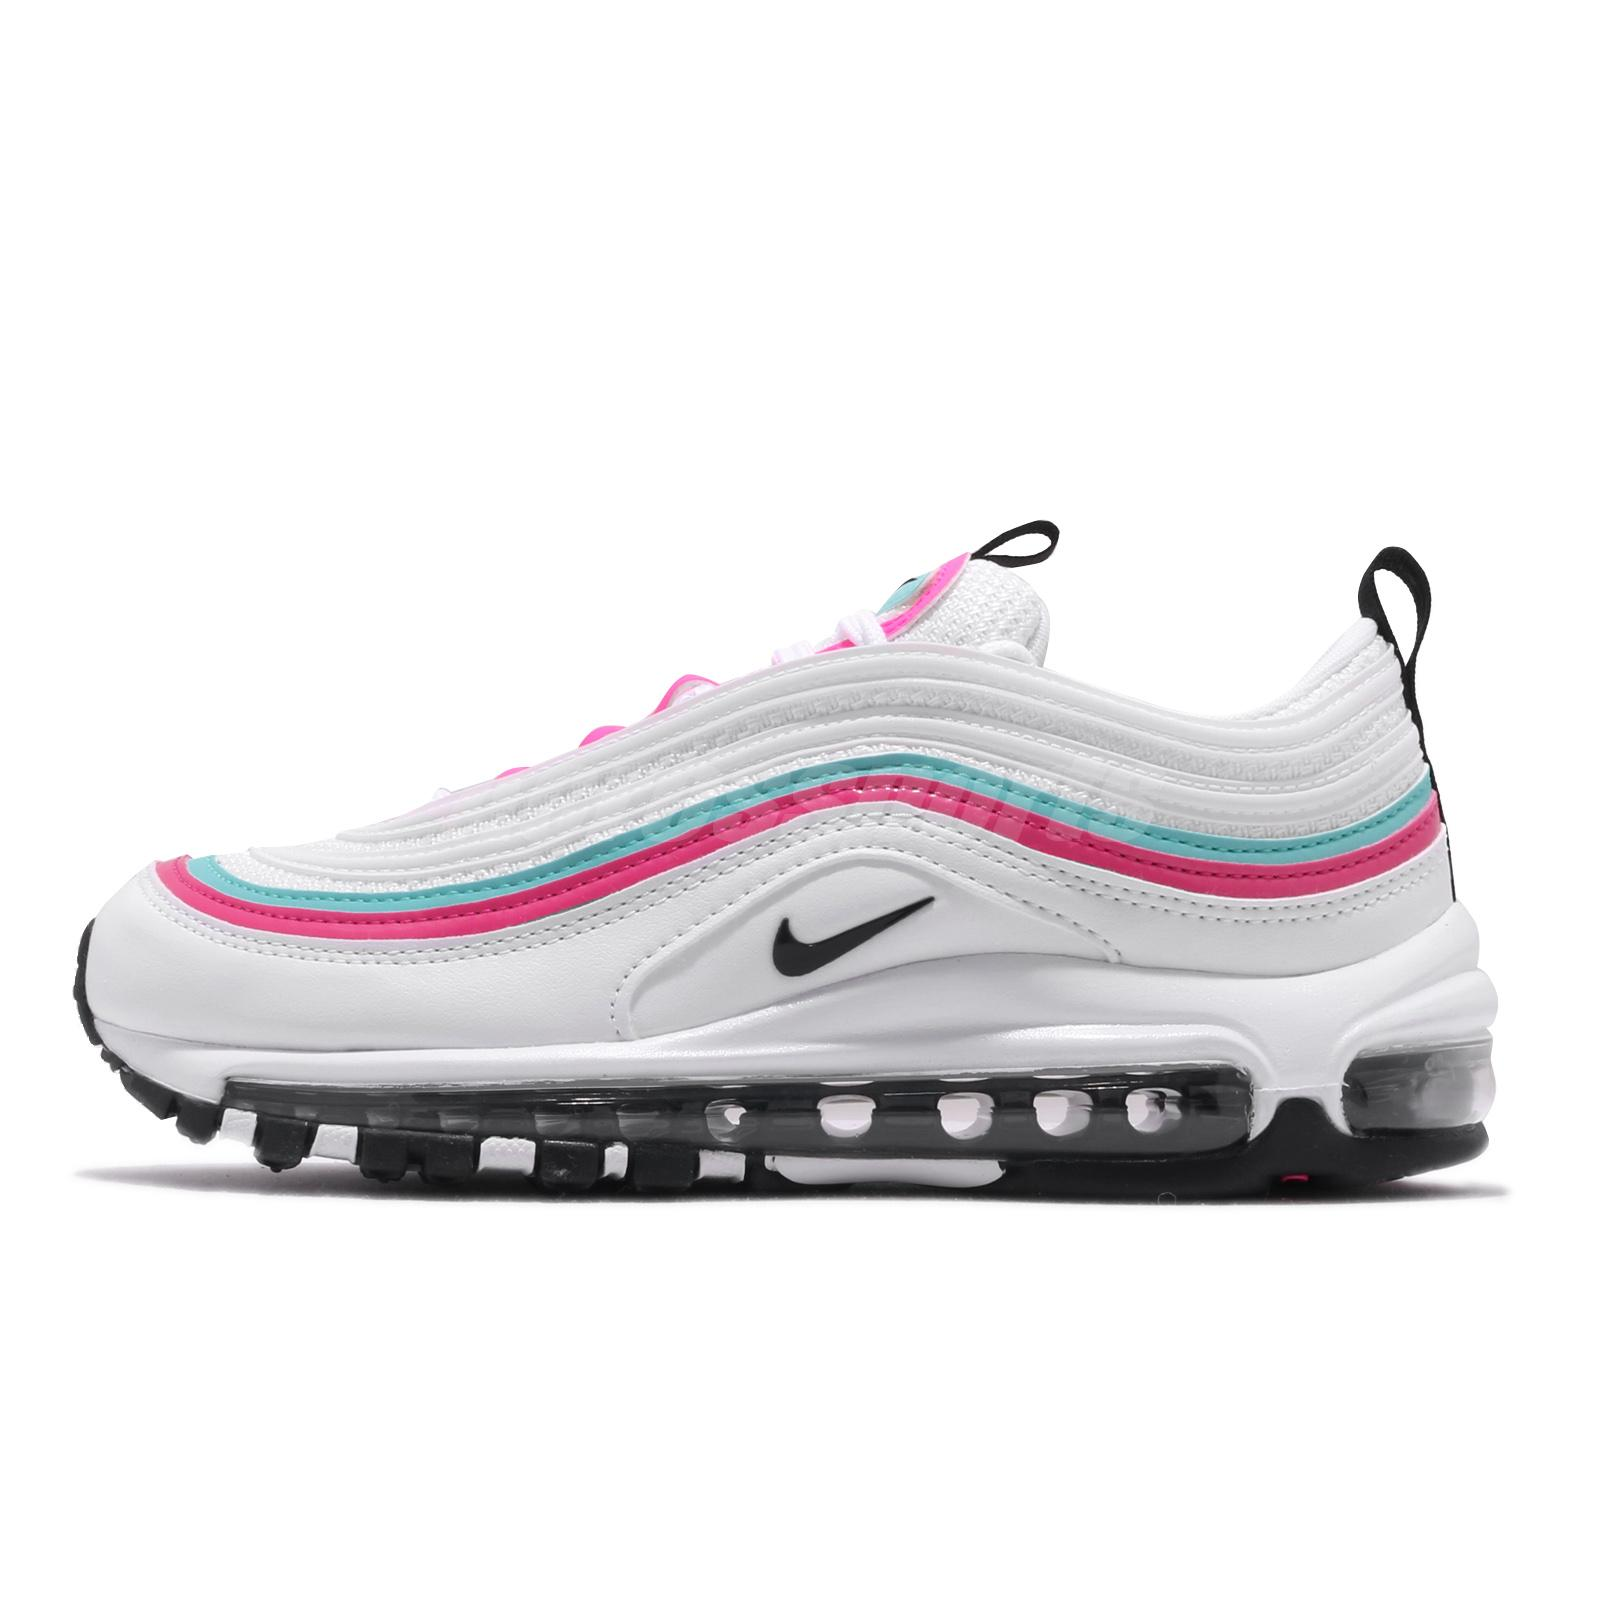 Nike Wmns Air Max 97 Summit White Black Pink Turq Women Casual